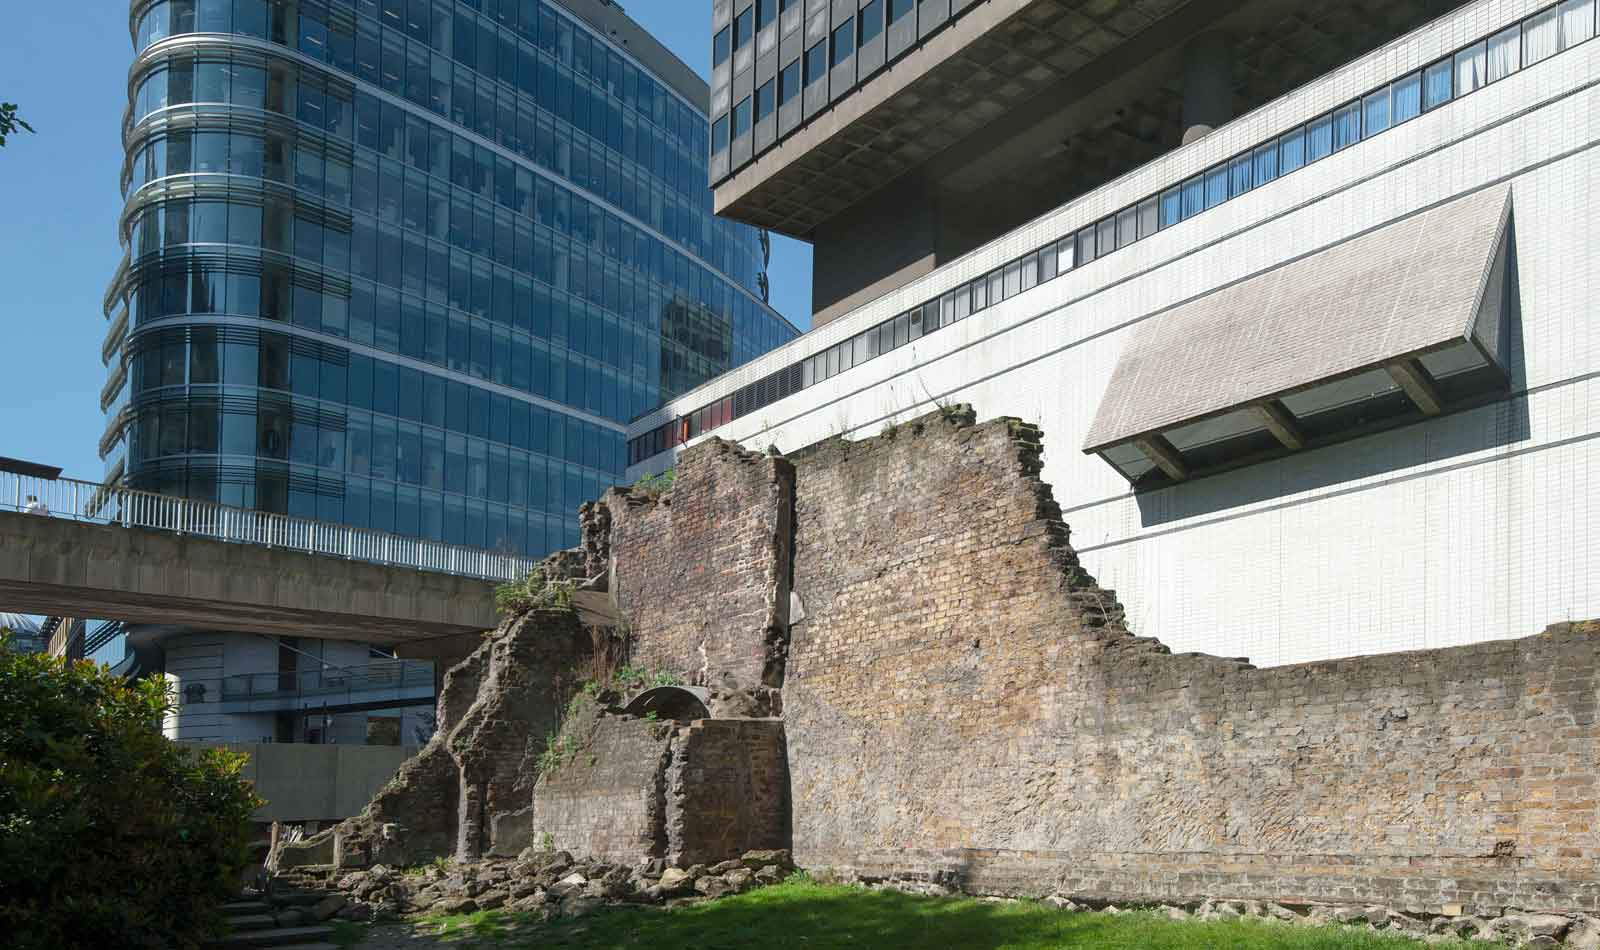 Looking from the gallery over the remains of London's wall you are looking at a mix of Roman, medieval and Victorian building. Here you are outside of Roman London, looking in to what was once the fort and later part of the city wall. 2000 years ago who might have been looking back?